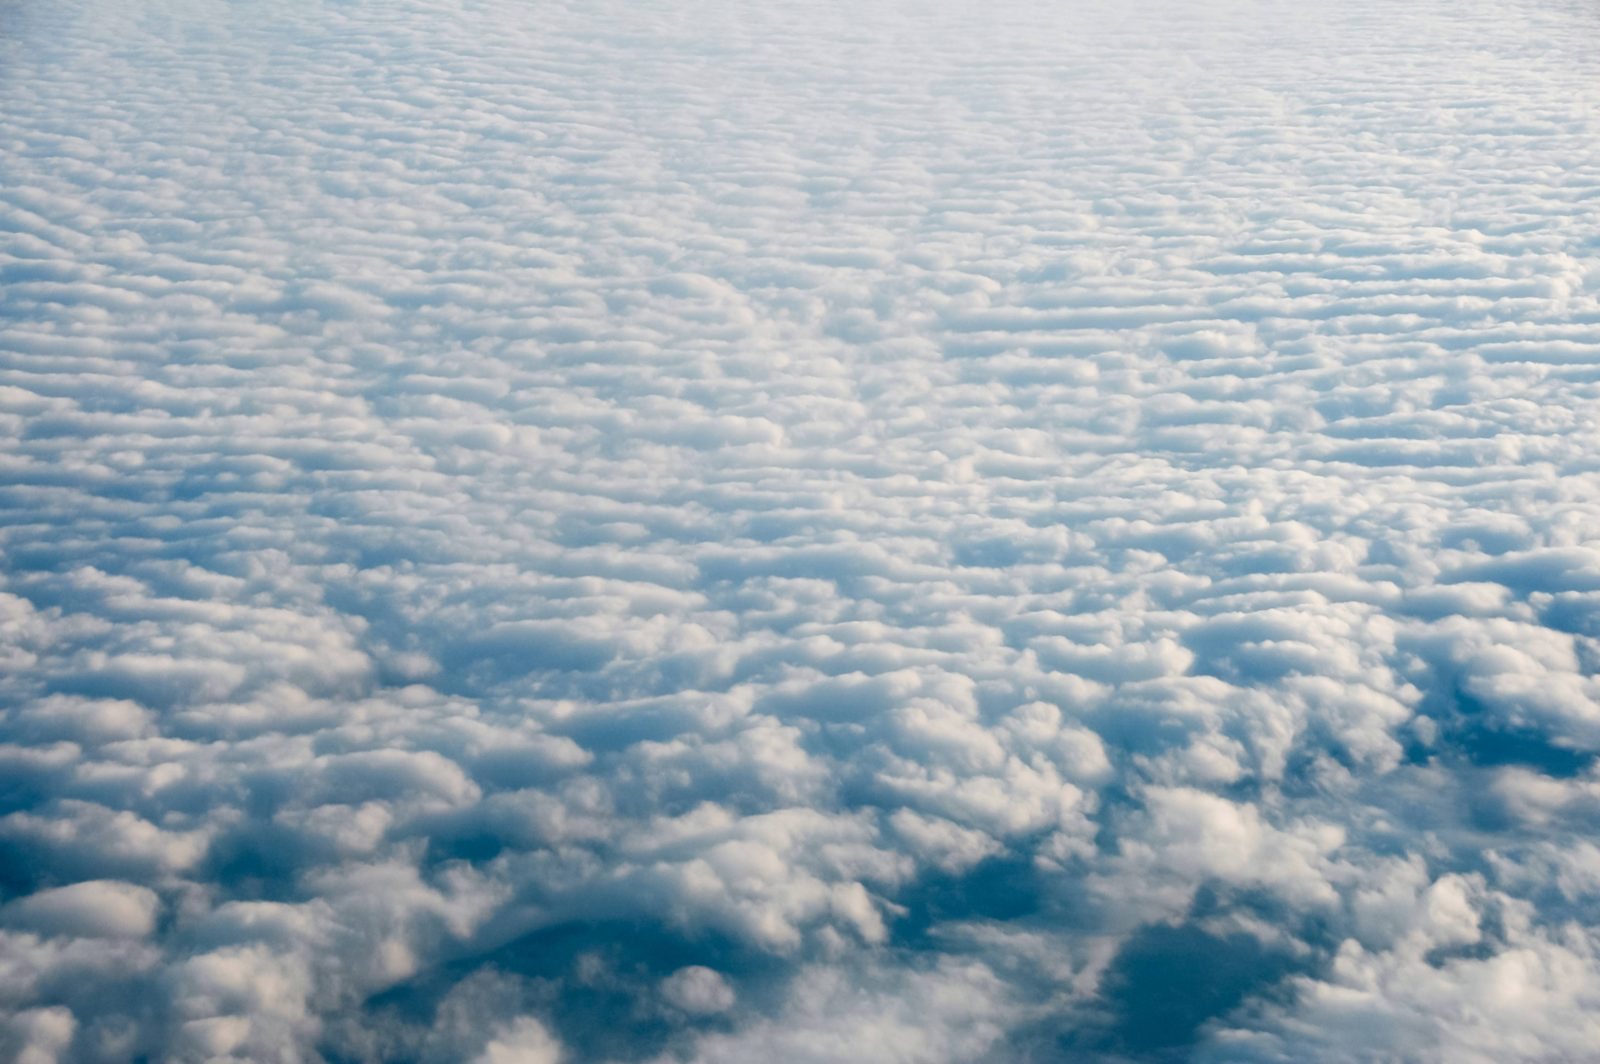 Cloudy sky viewed from above